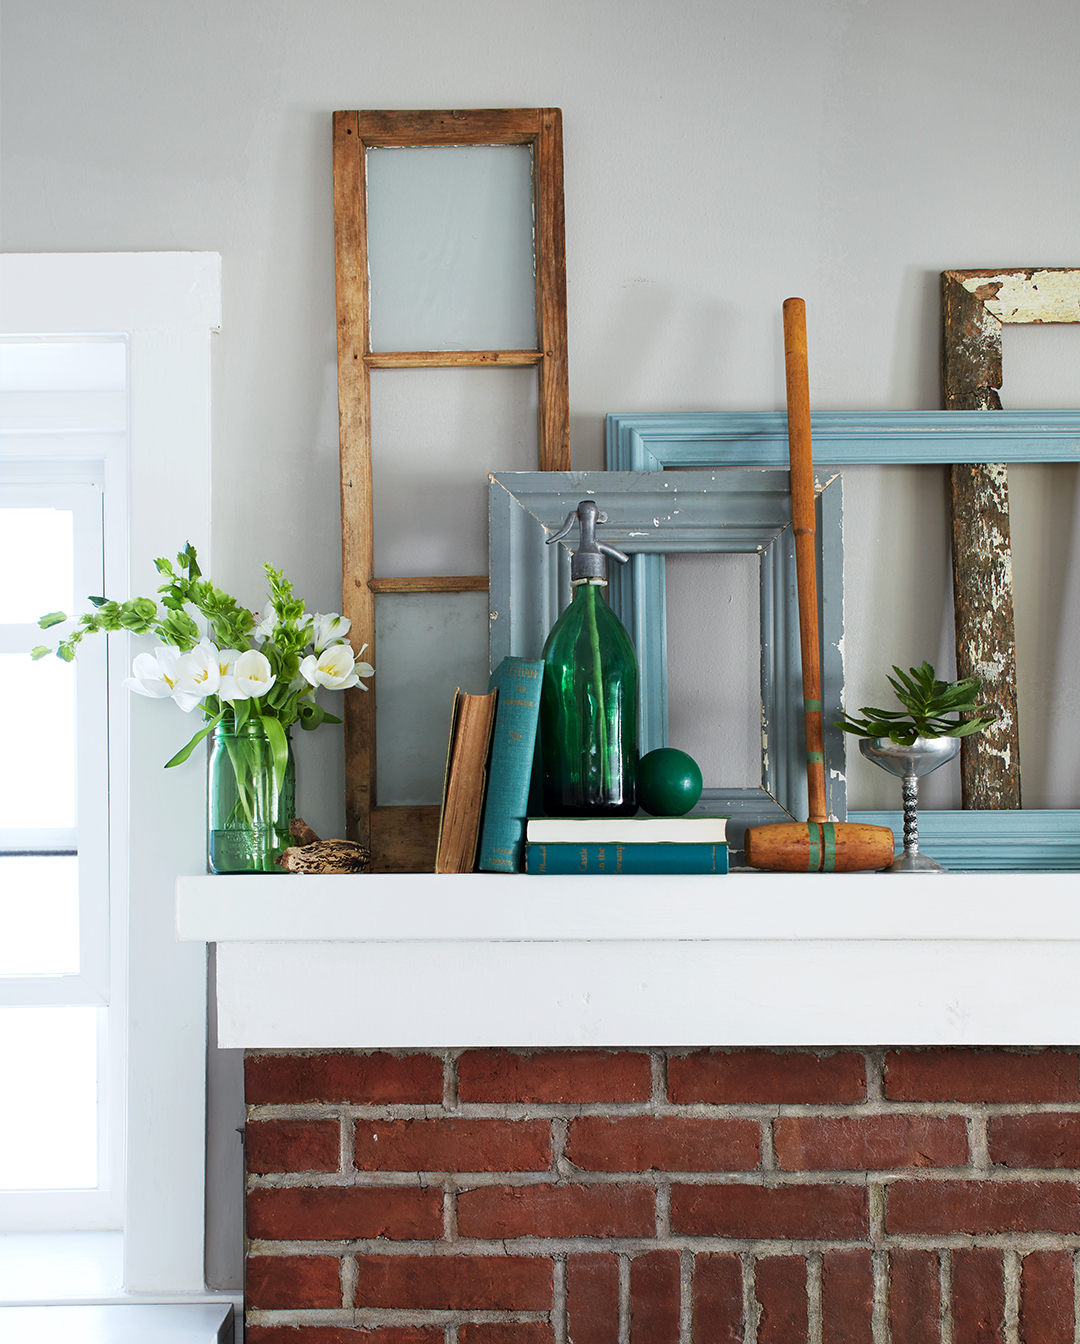 How To Decorate A Fireplace Mantel: Fireplace Mantel Decorating